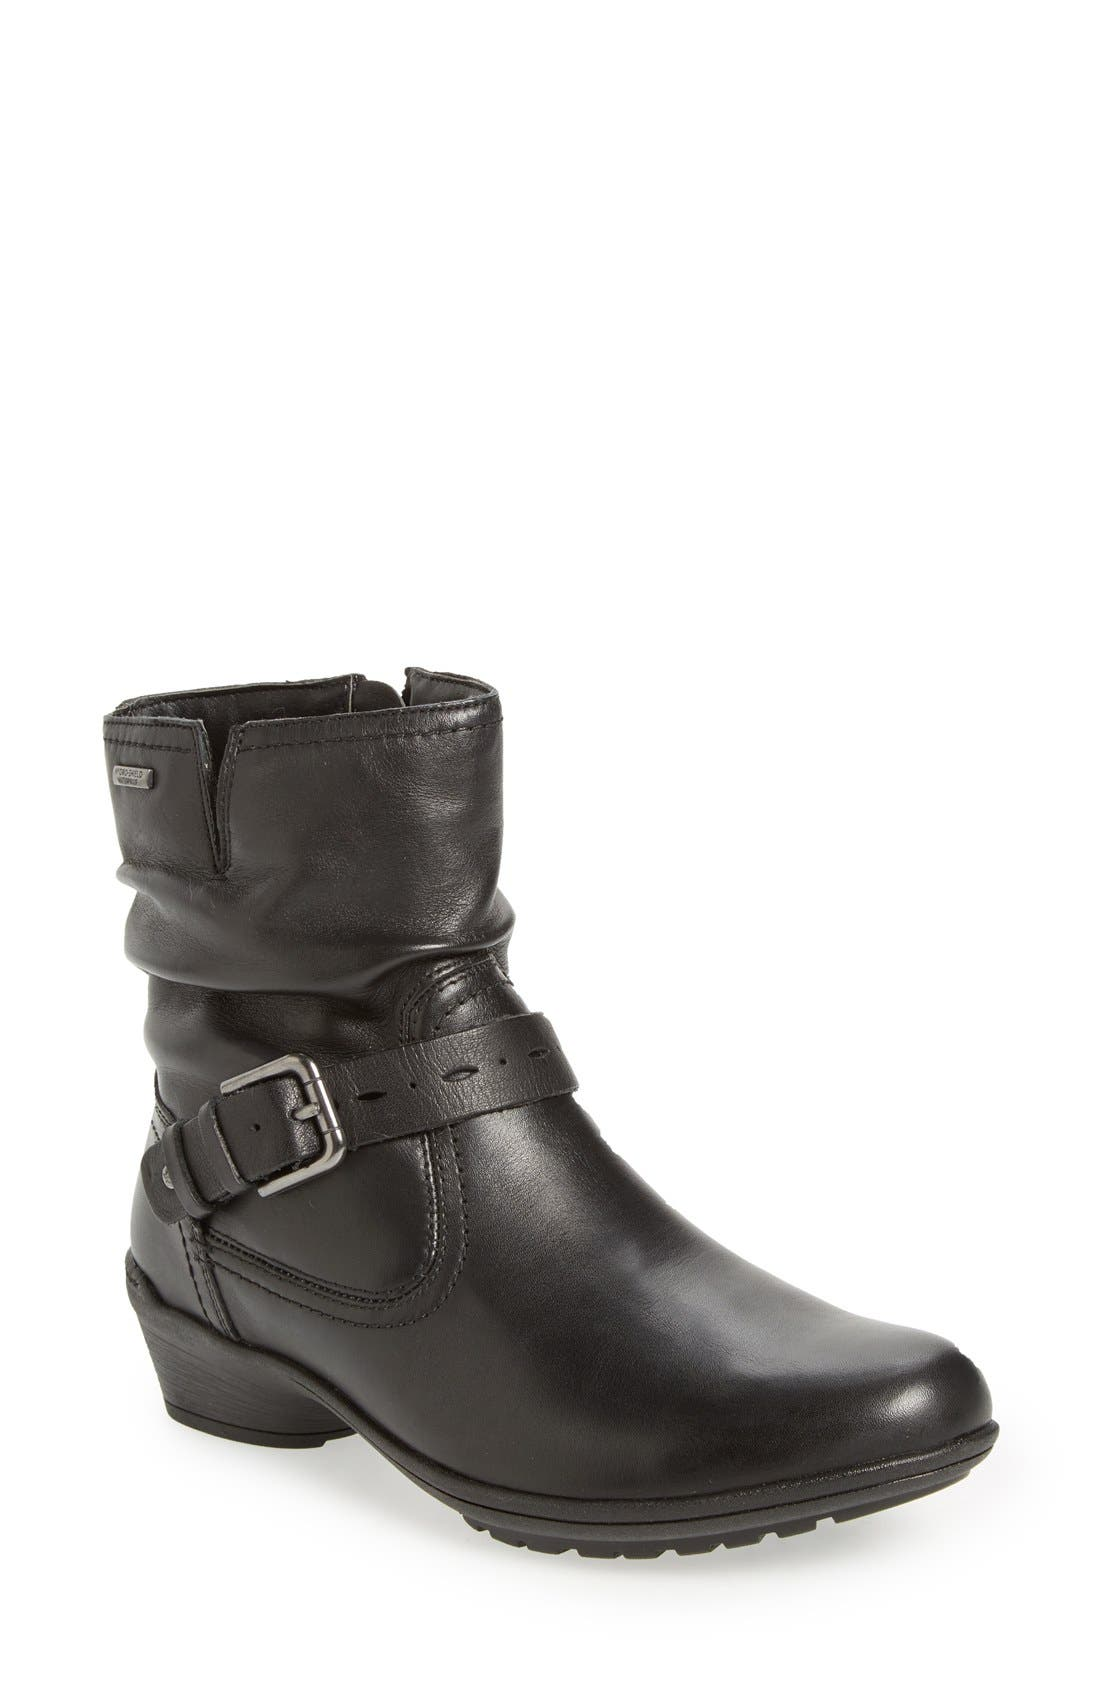 'Riley' Waterproof Buckle Strap Bootie,                             Main thumbnail 1, color,                             BLACK LEATHER